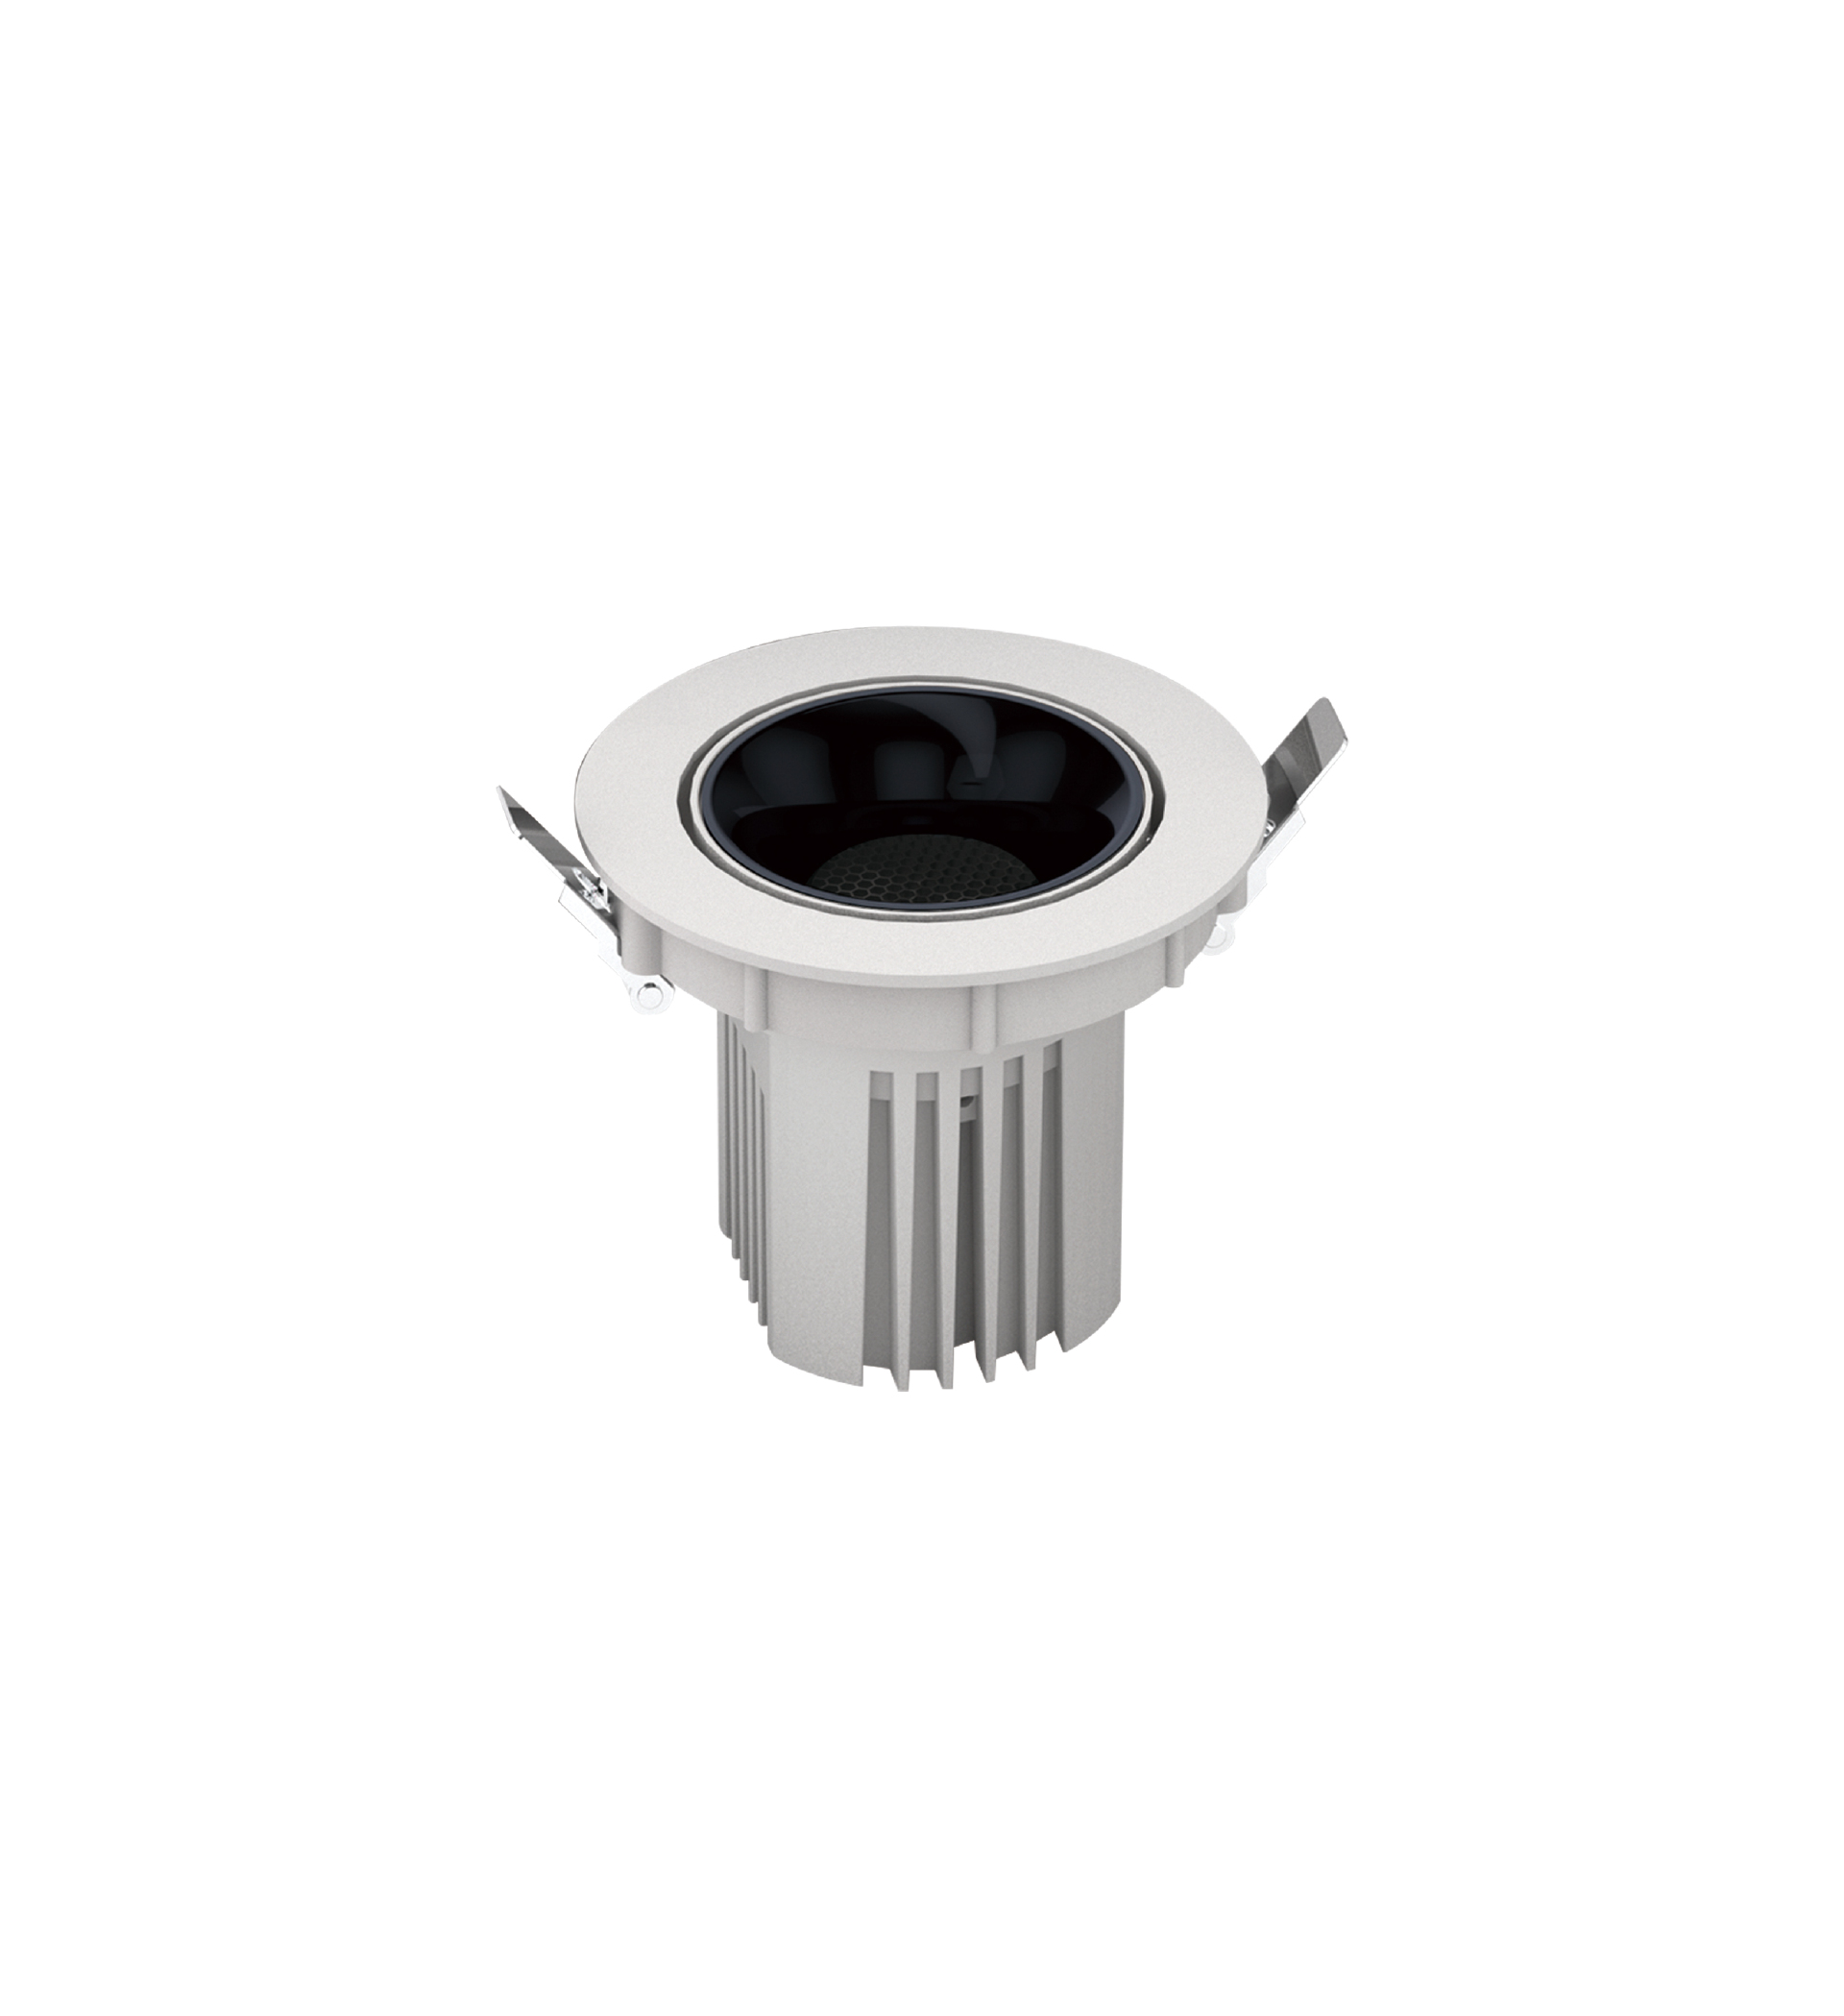 GDL Series LED Downlights